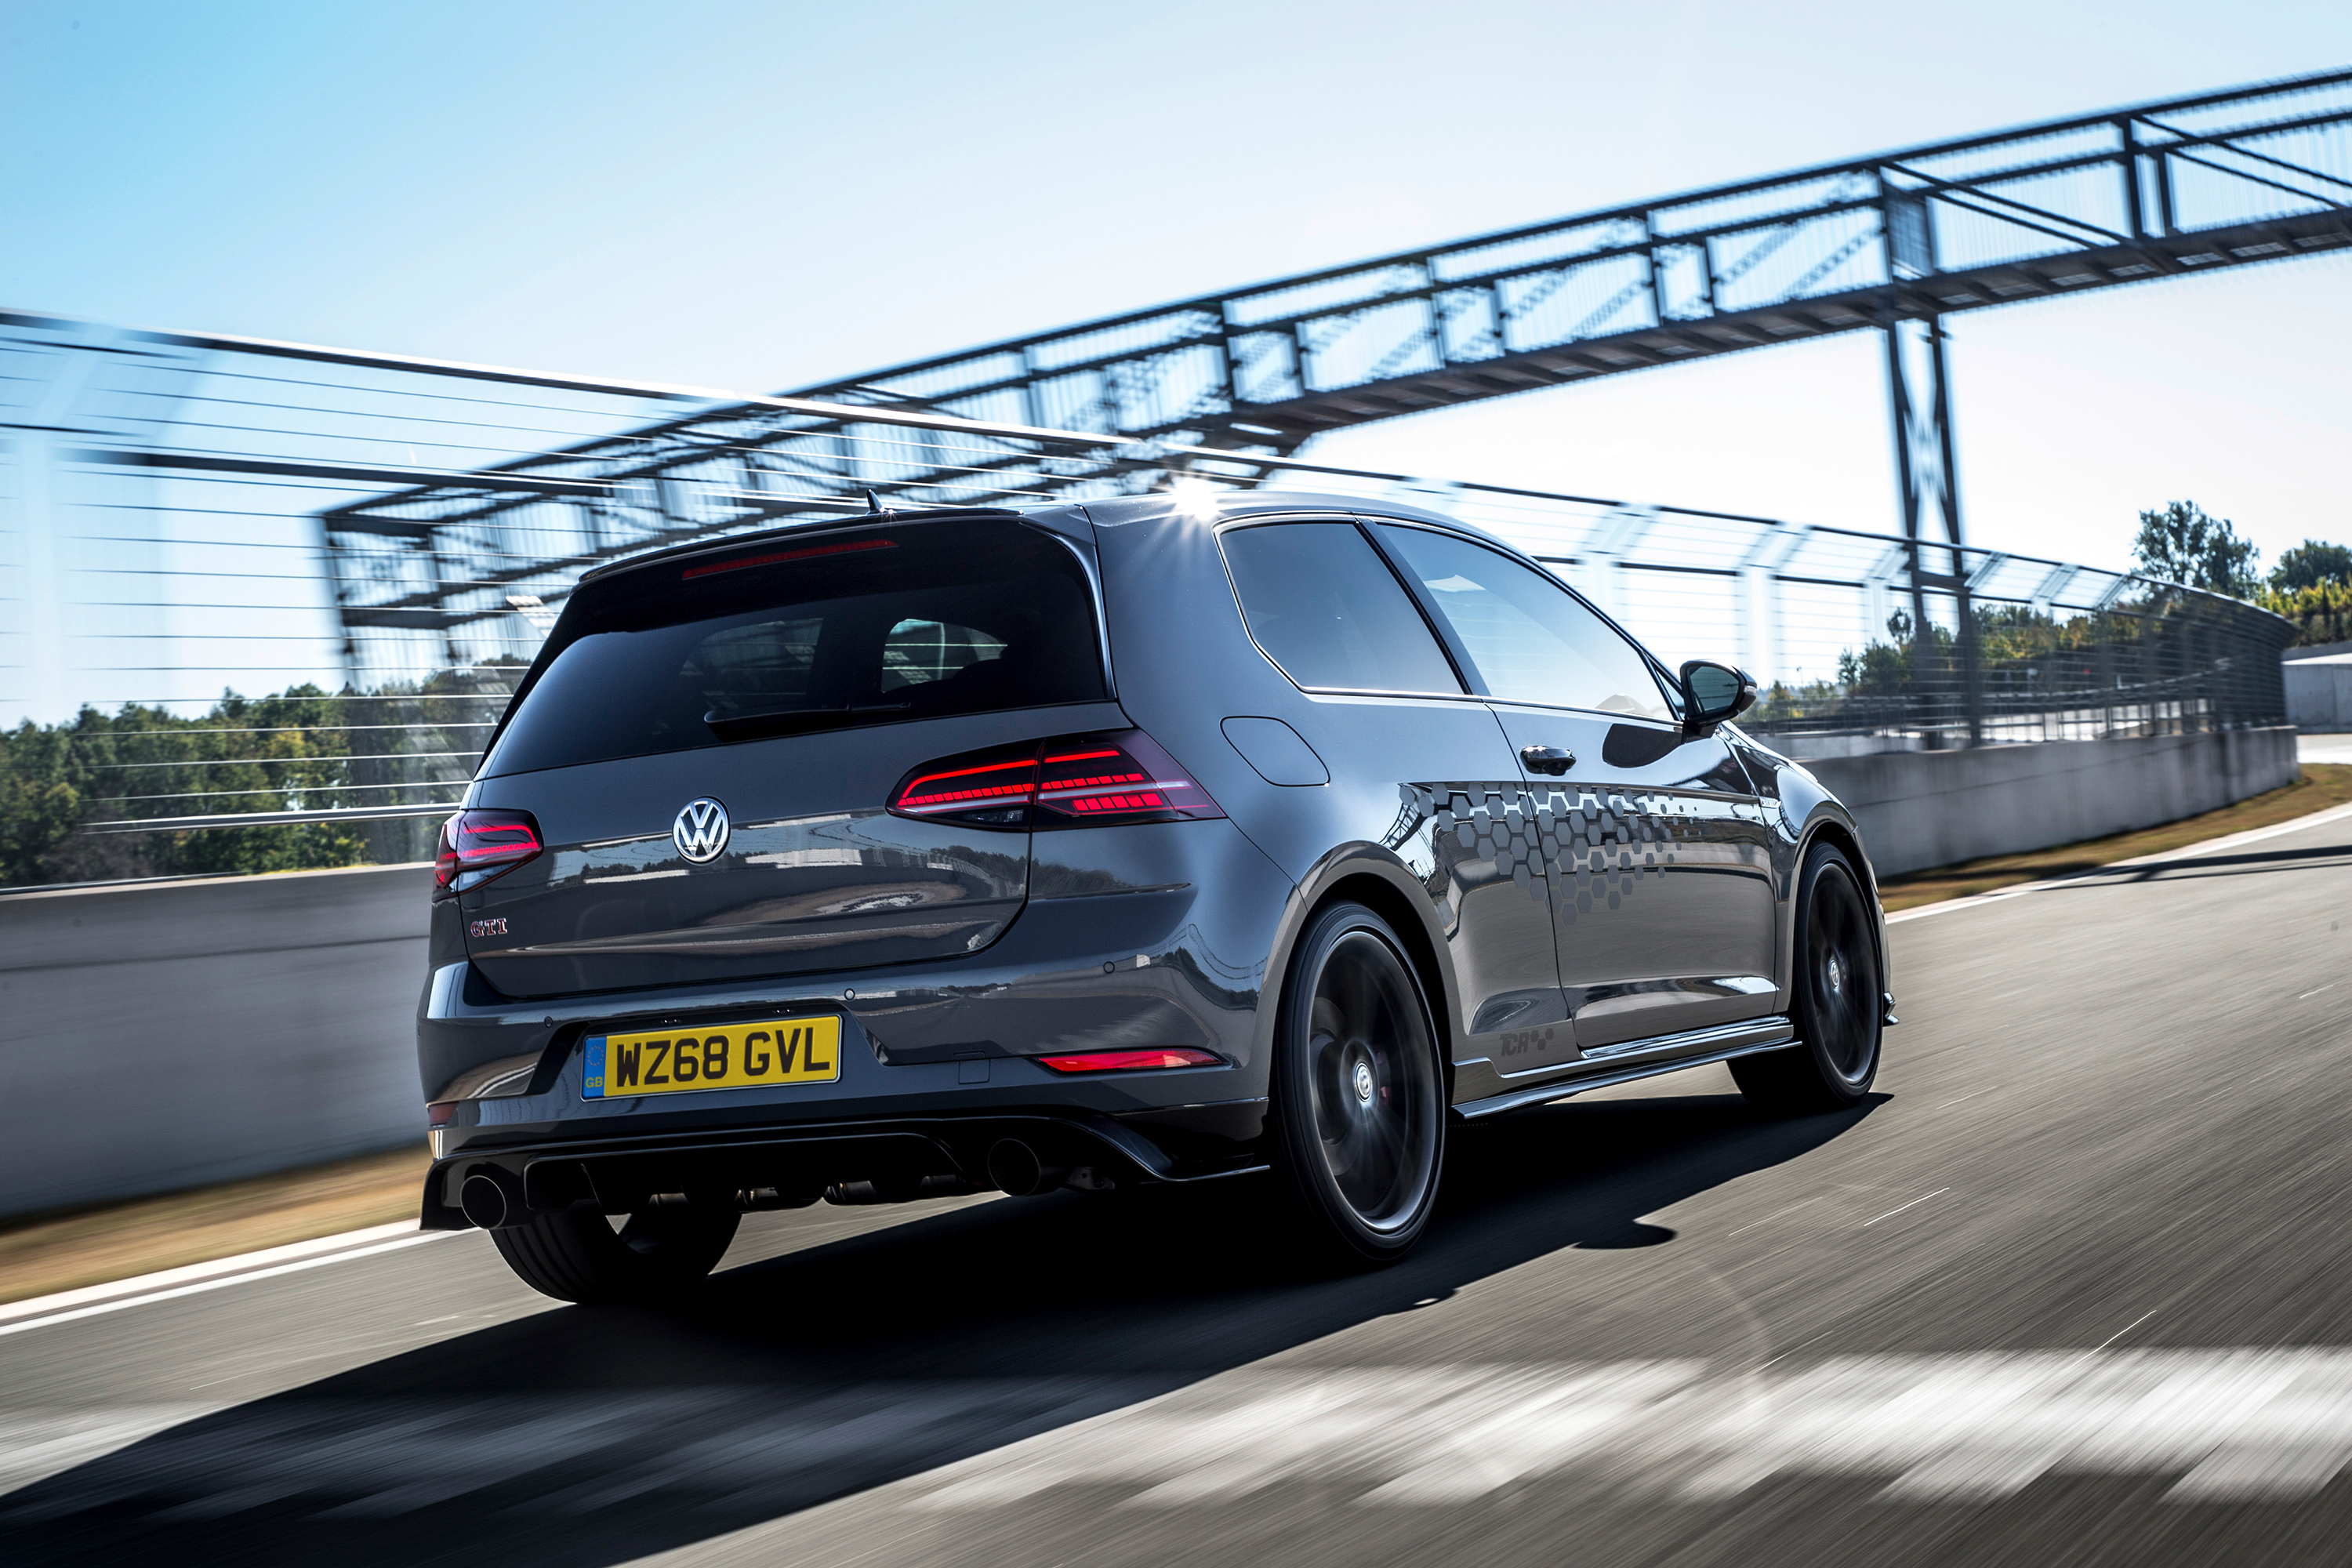 The TCR took pointers from touring cars